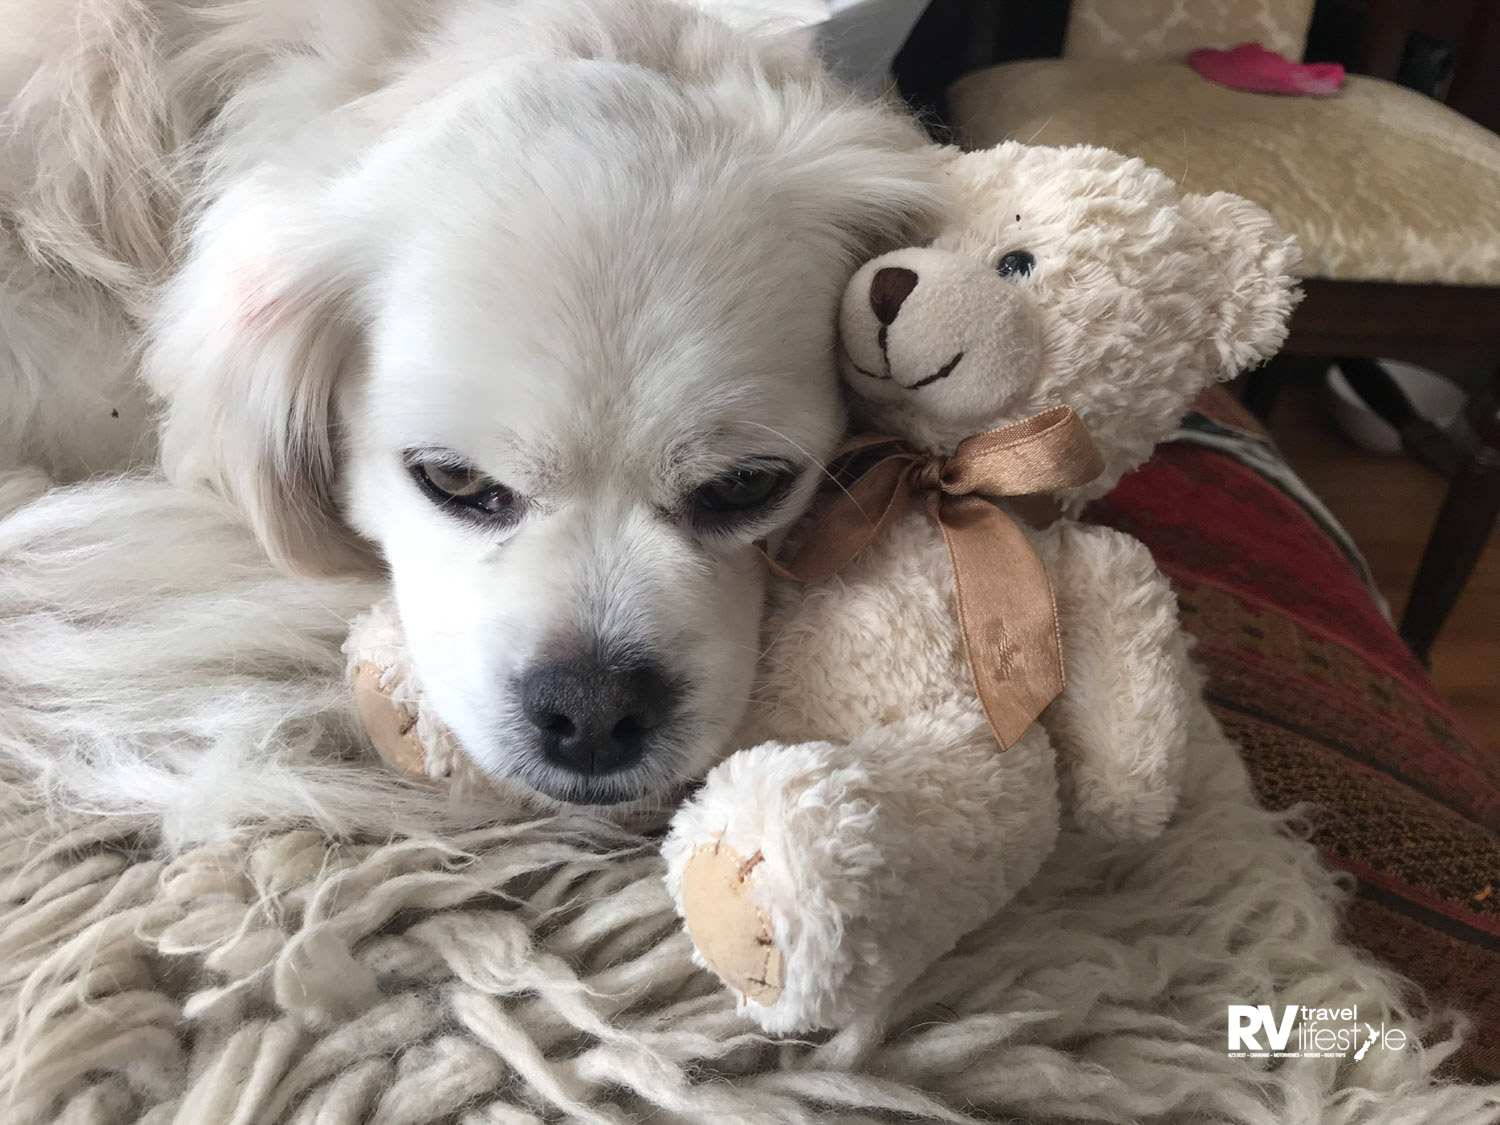 Snuggling up with my favourite teddy-bear